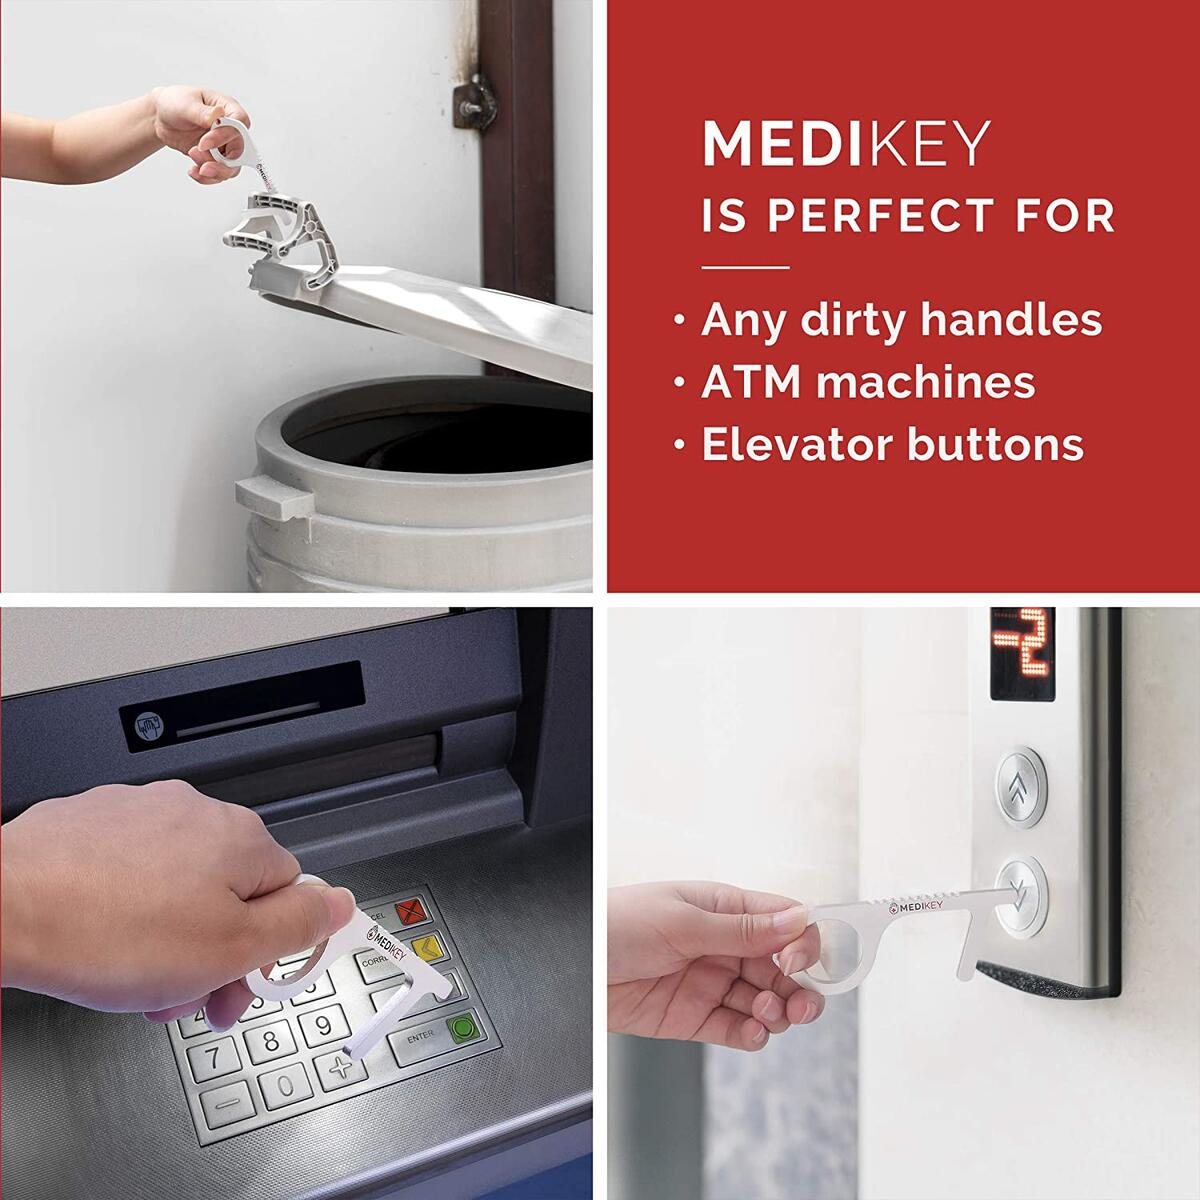 MEDIKEY Contactless Door Opener – The Original Clean Key for Door Handles, ATMs, Elevators with Stylus tool – Made from Antimicrobial Silver-Plated Brass Alloy (2 Pack)